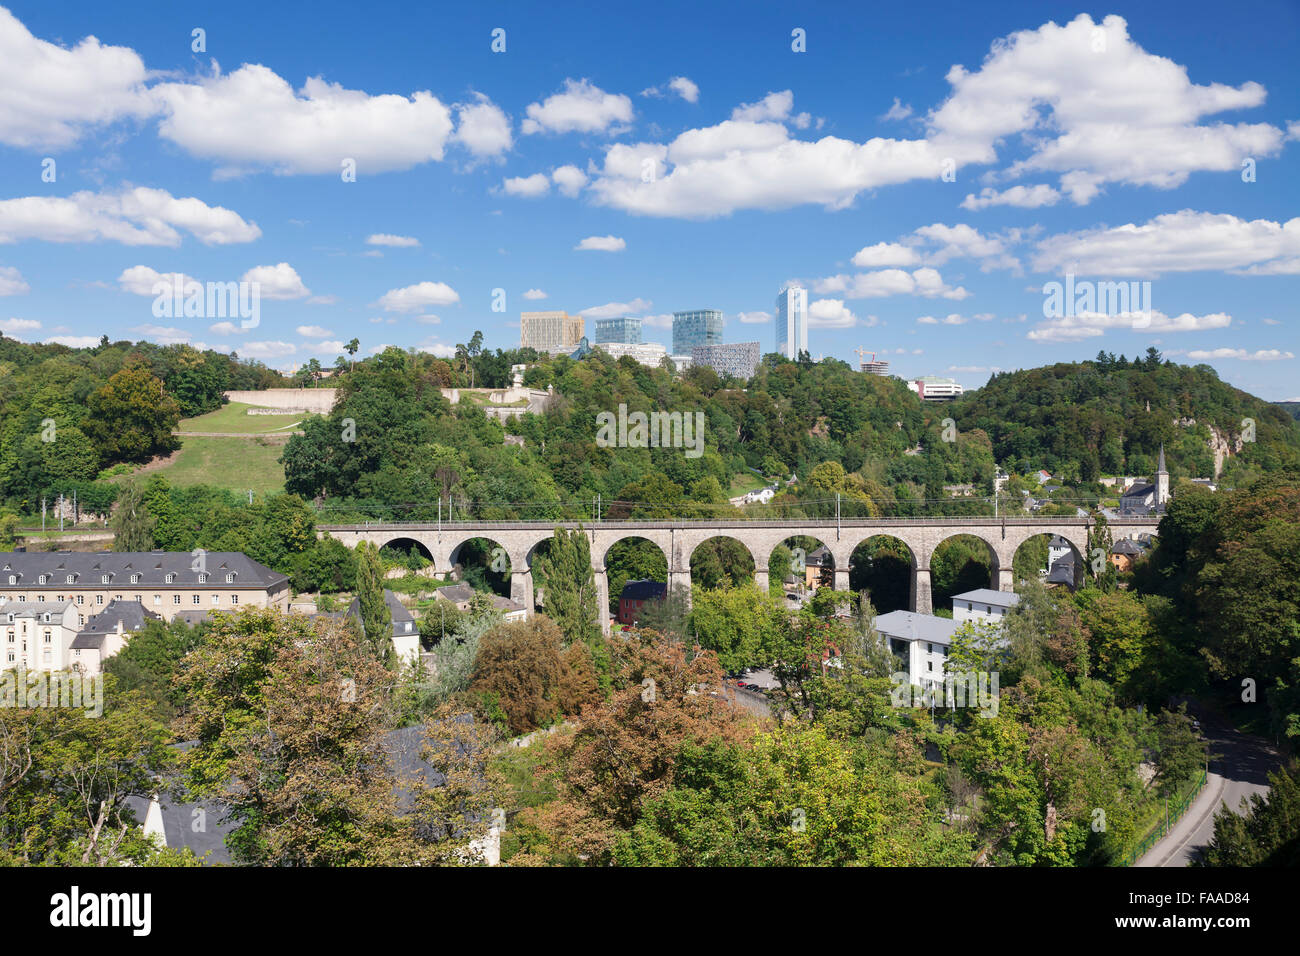 View from the Casemates du buck at Aqueduct and Kirchberg plateau, Luxembourg City, Grand Duchy of Luxembourg - Stock Image